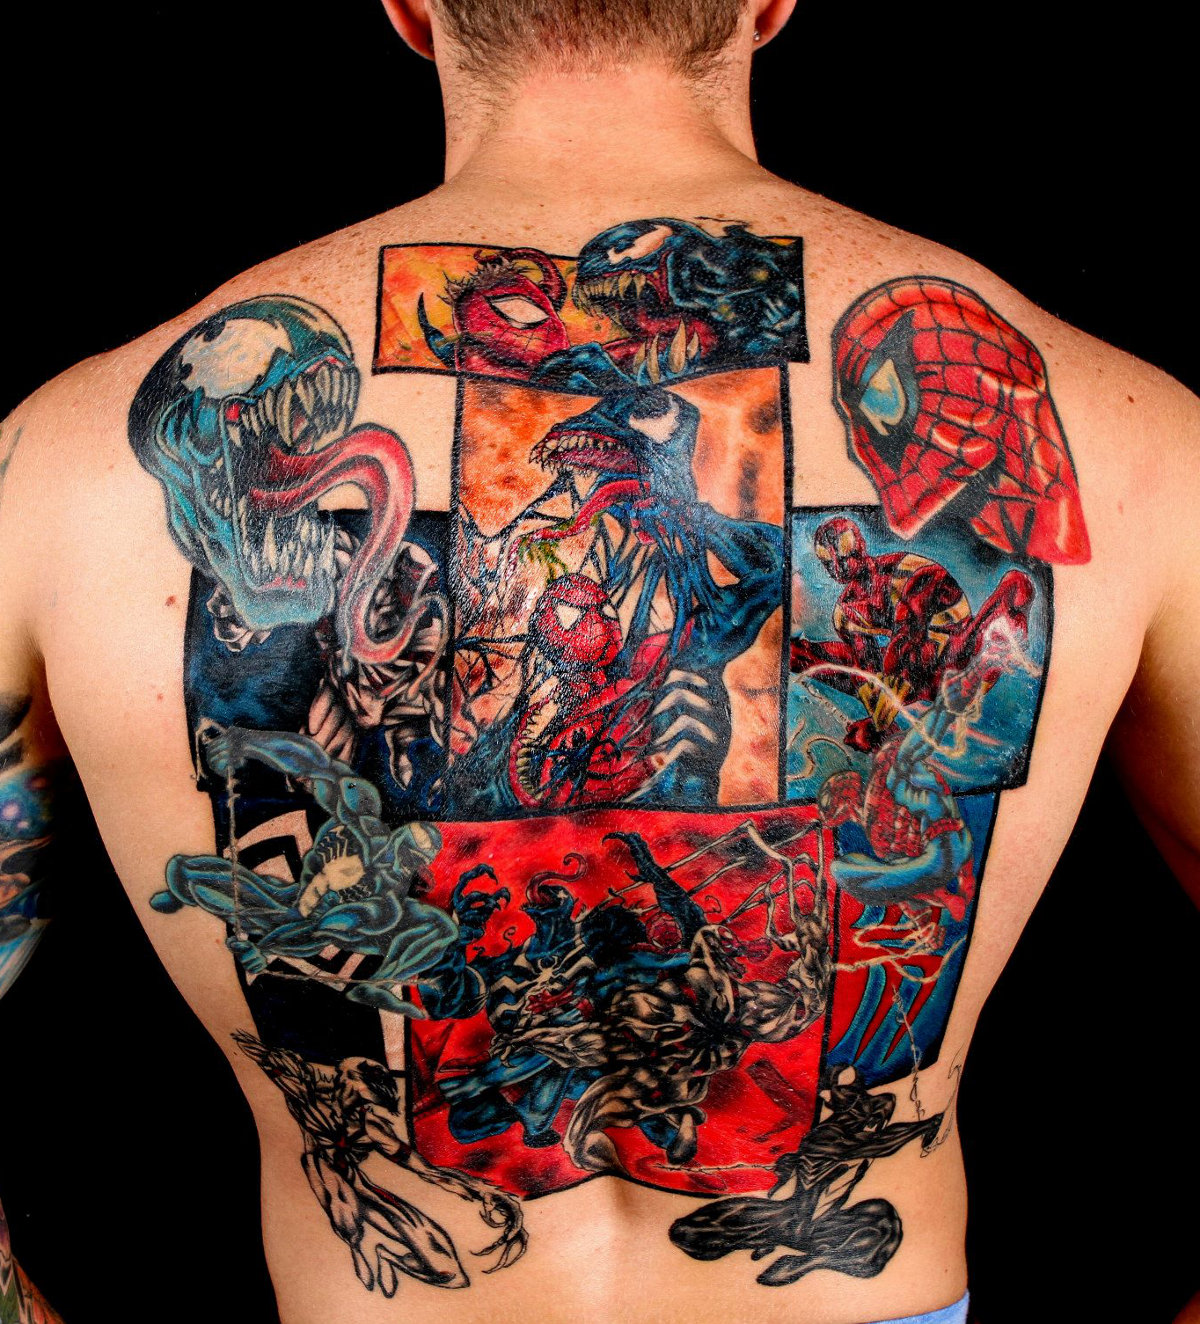 Tattoo Studio in Great Falls, Montana realises the tattoo artist has ...